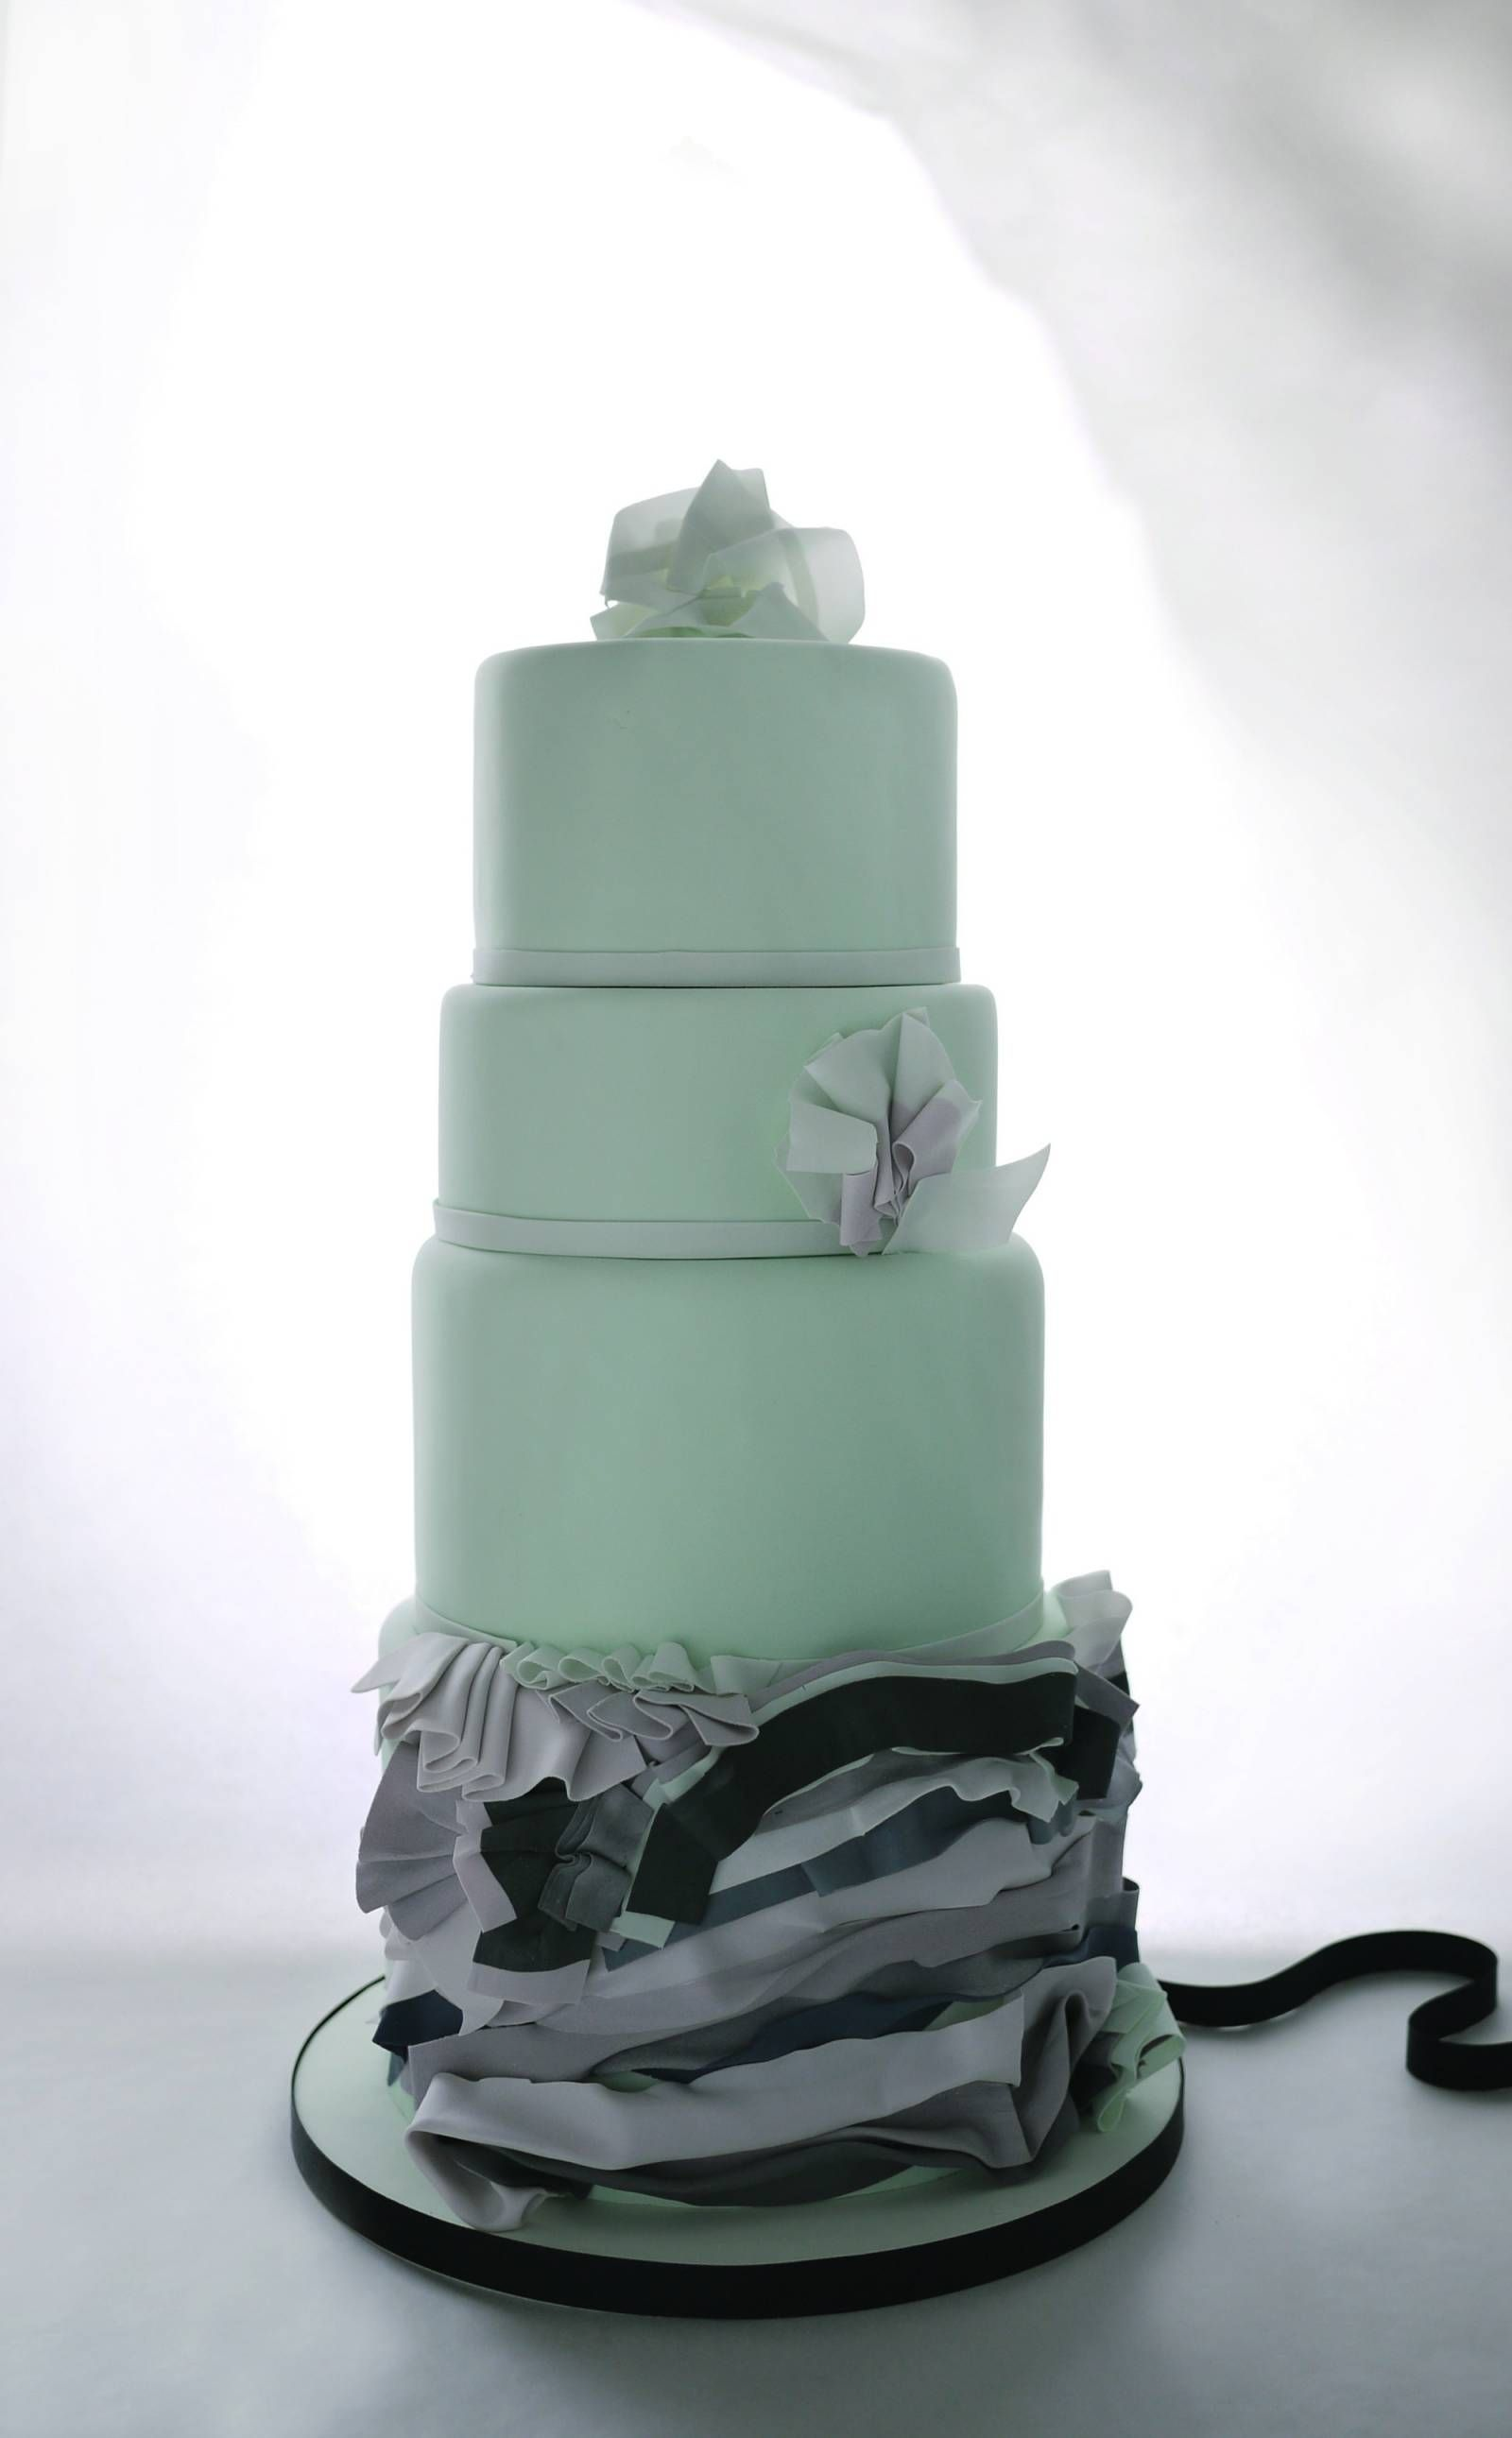 Charm City Cakes' collection of colorful wedding cakes is inspired by art deco…